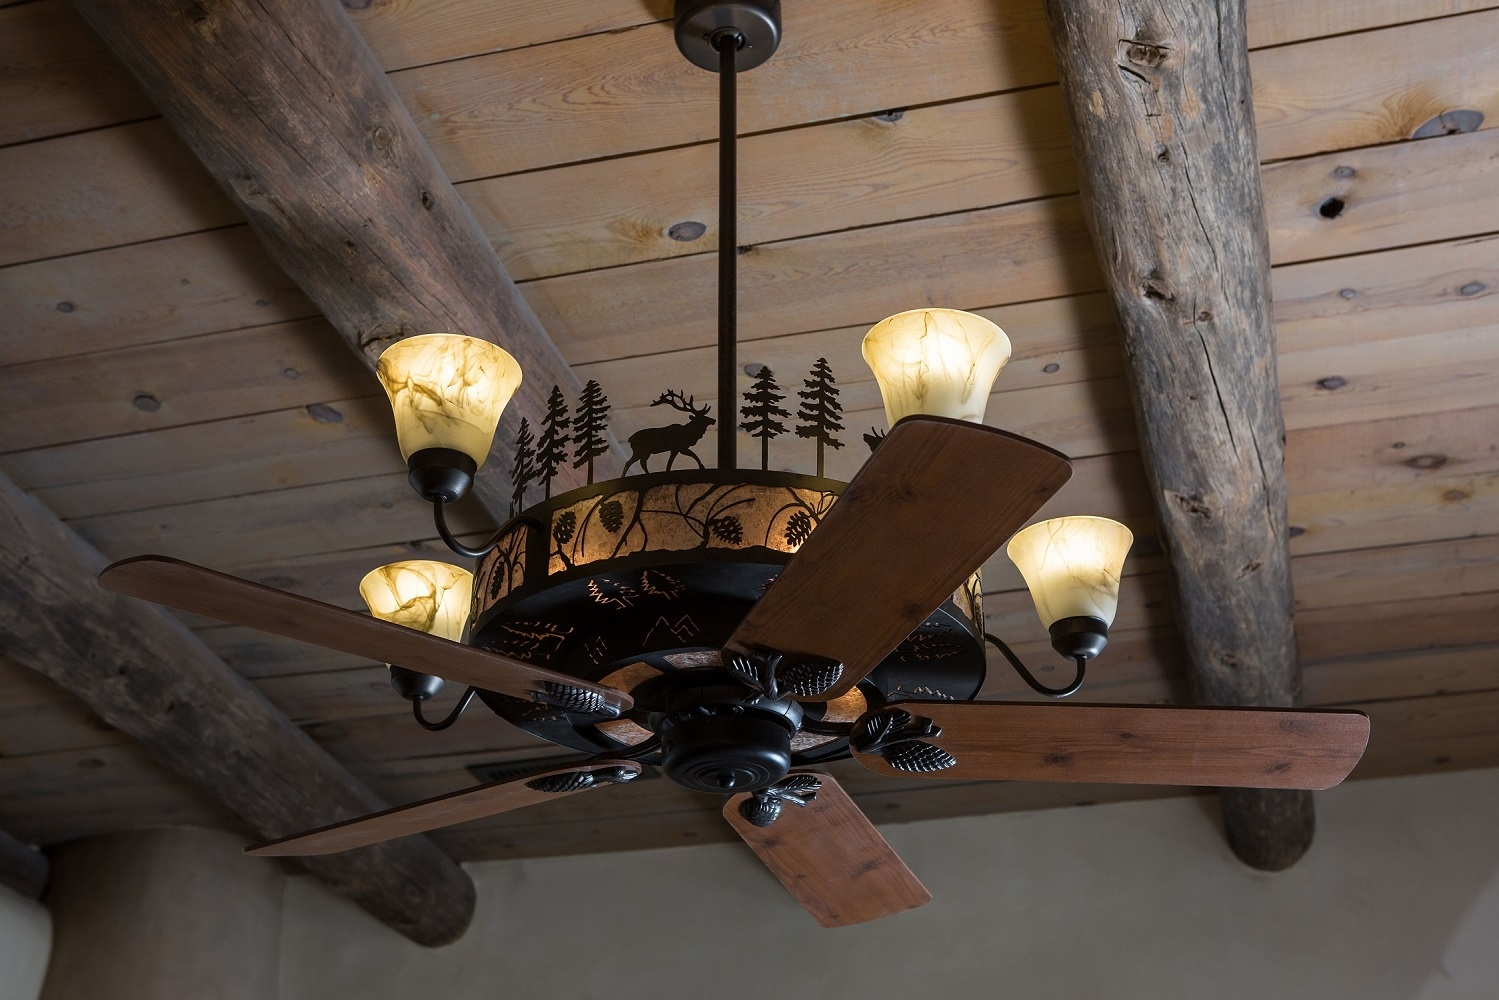 Old And Rustic Oversized Lantern Chandeliers Lighting Built In Pertaining To Oversized Chandeliers (View 10 of 15)